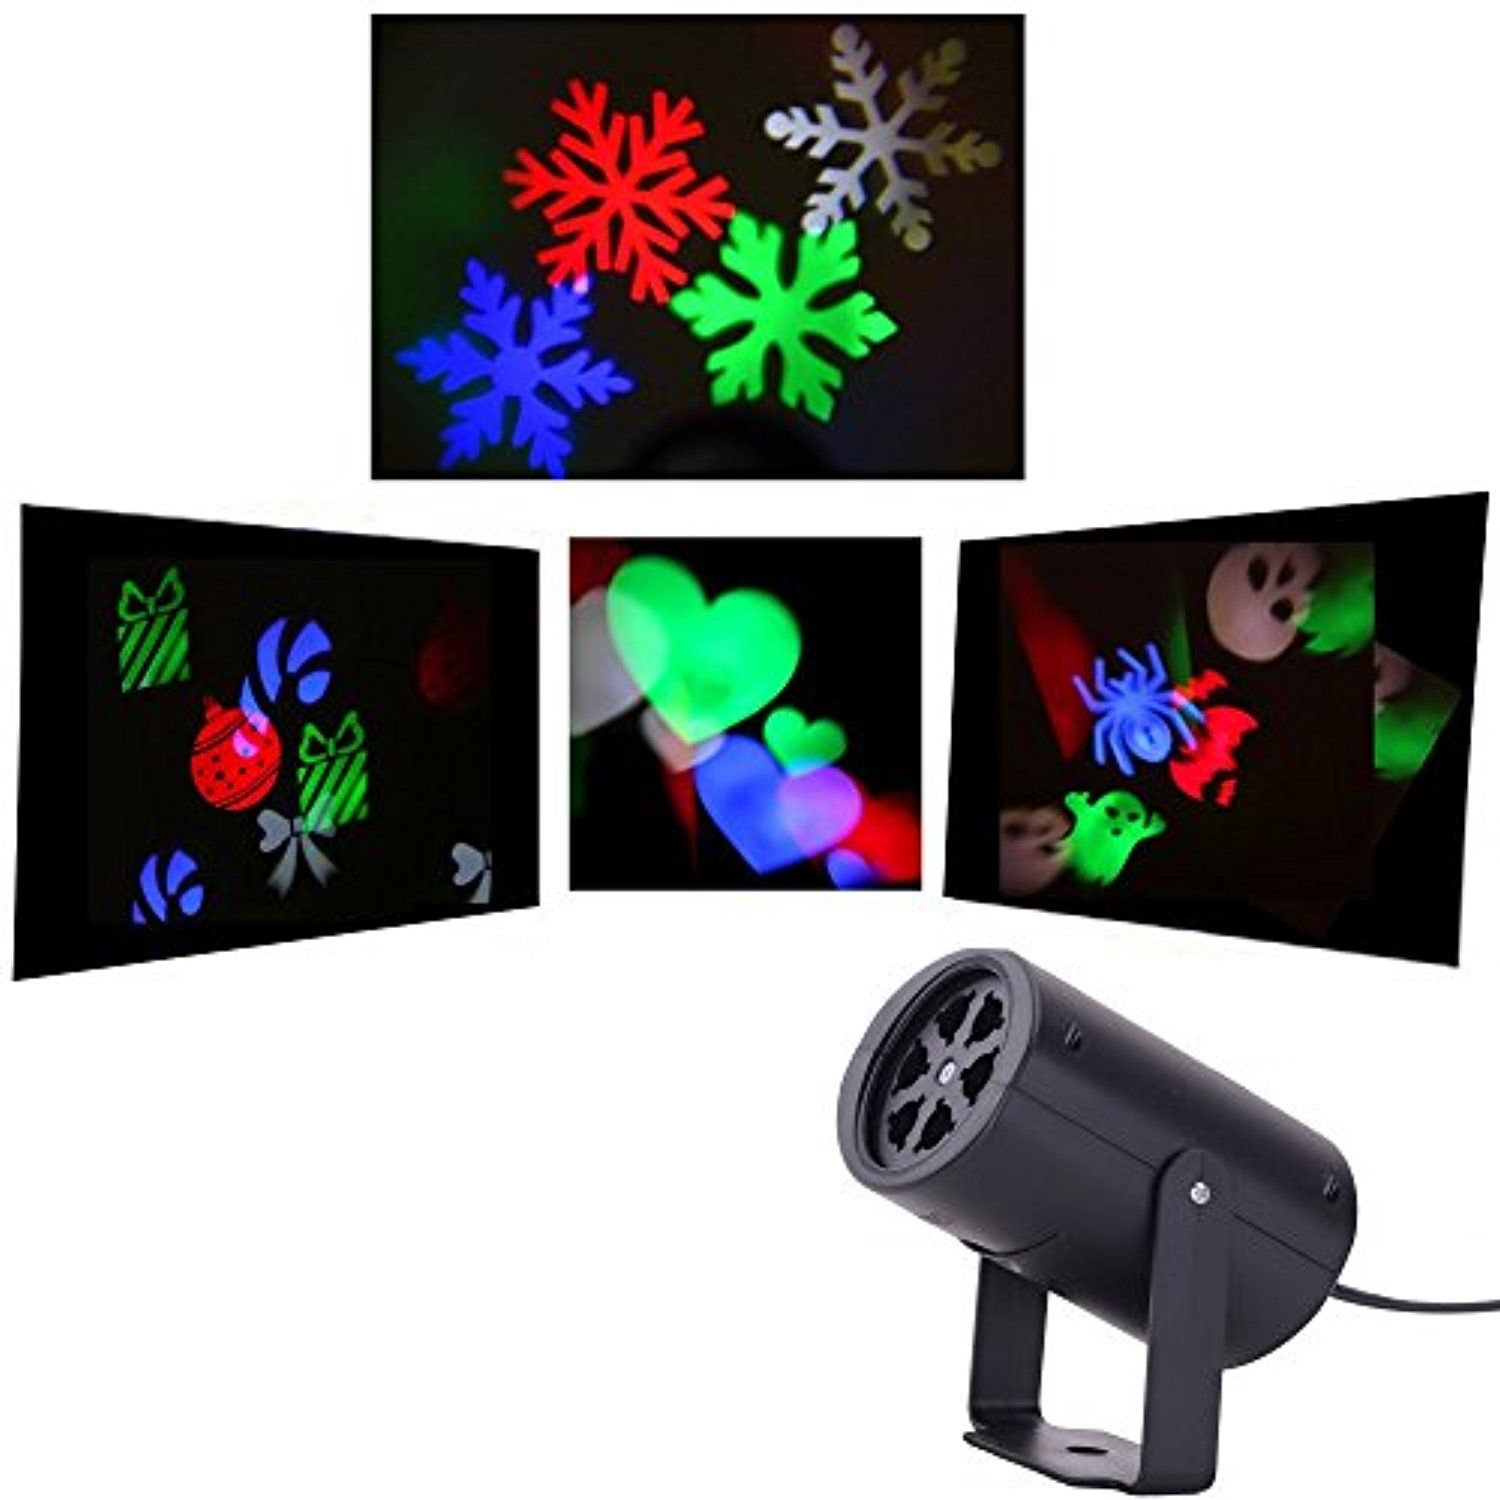 Holiday Light Projector For Christmas Halloween Valentine S Day Home Party Night Christmas Gifts For Kids Halloween Party Decor Halloween Decorations Indoor